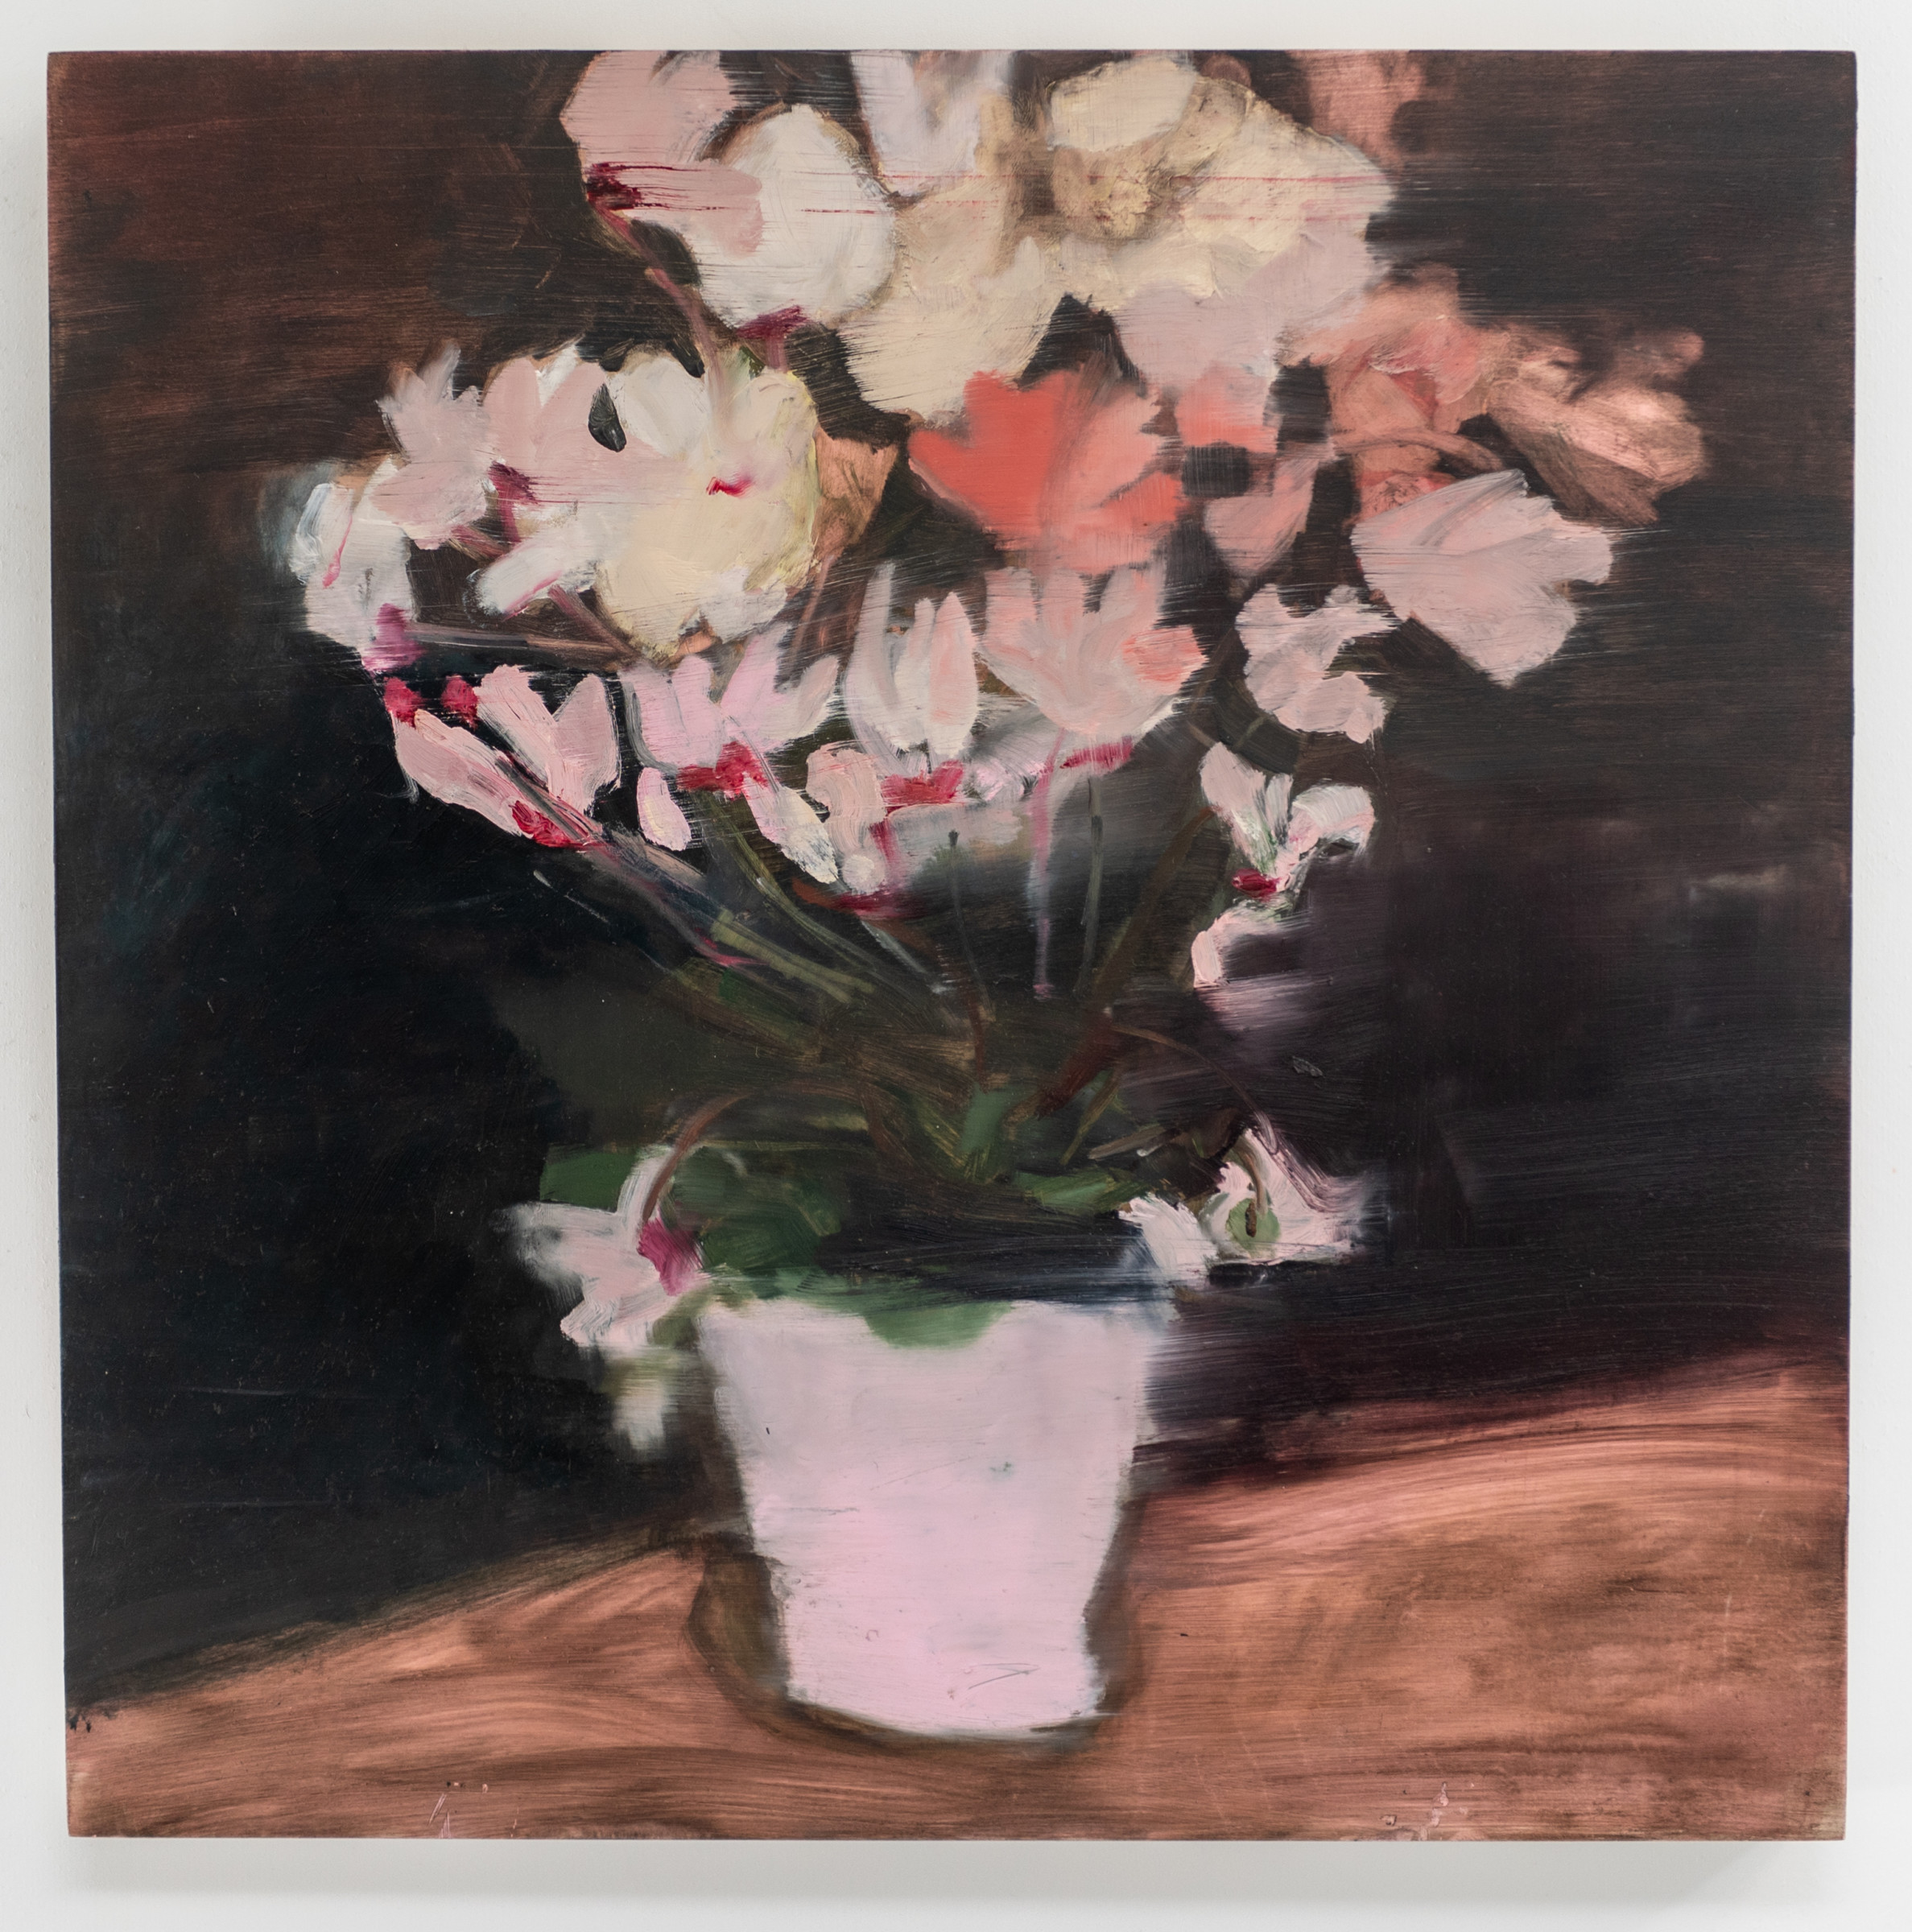 """<span class=""""link fancybox-details-link""""><a href=""""/artists/56-hadas-tal/works/717-hadas-tal-saturday-night-still-life/"""">View Detail Page</a></span><div class=""""artist""""><strong>Hadas Tal</strong></div> <div class=""""title""""><em>Saturday Night Still Life</em></div> <div class=""""medium"""">Oil on Wood Panel</div> <div class=""""dimensions"""">16 x 16 inches </div>"""